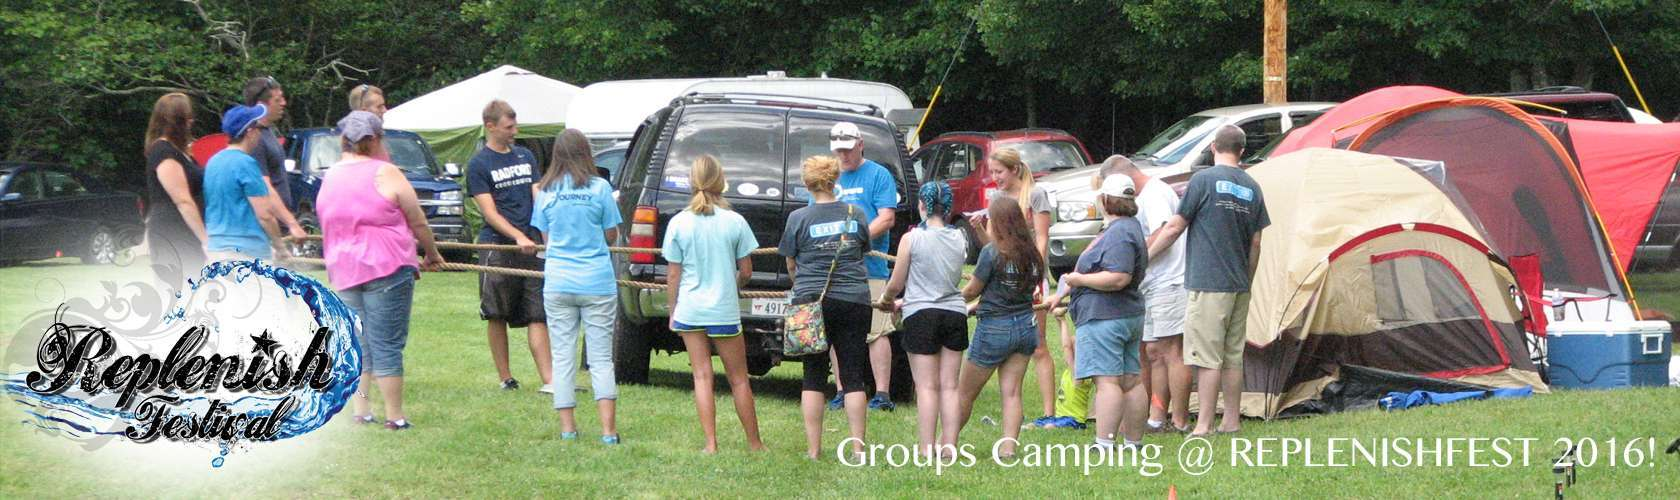 Groups Camping